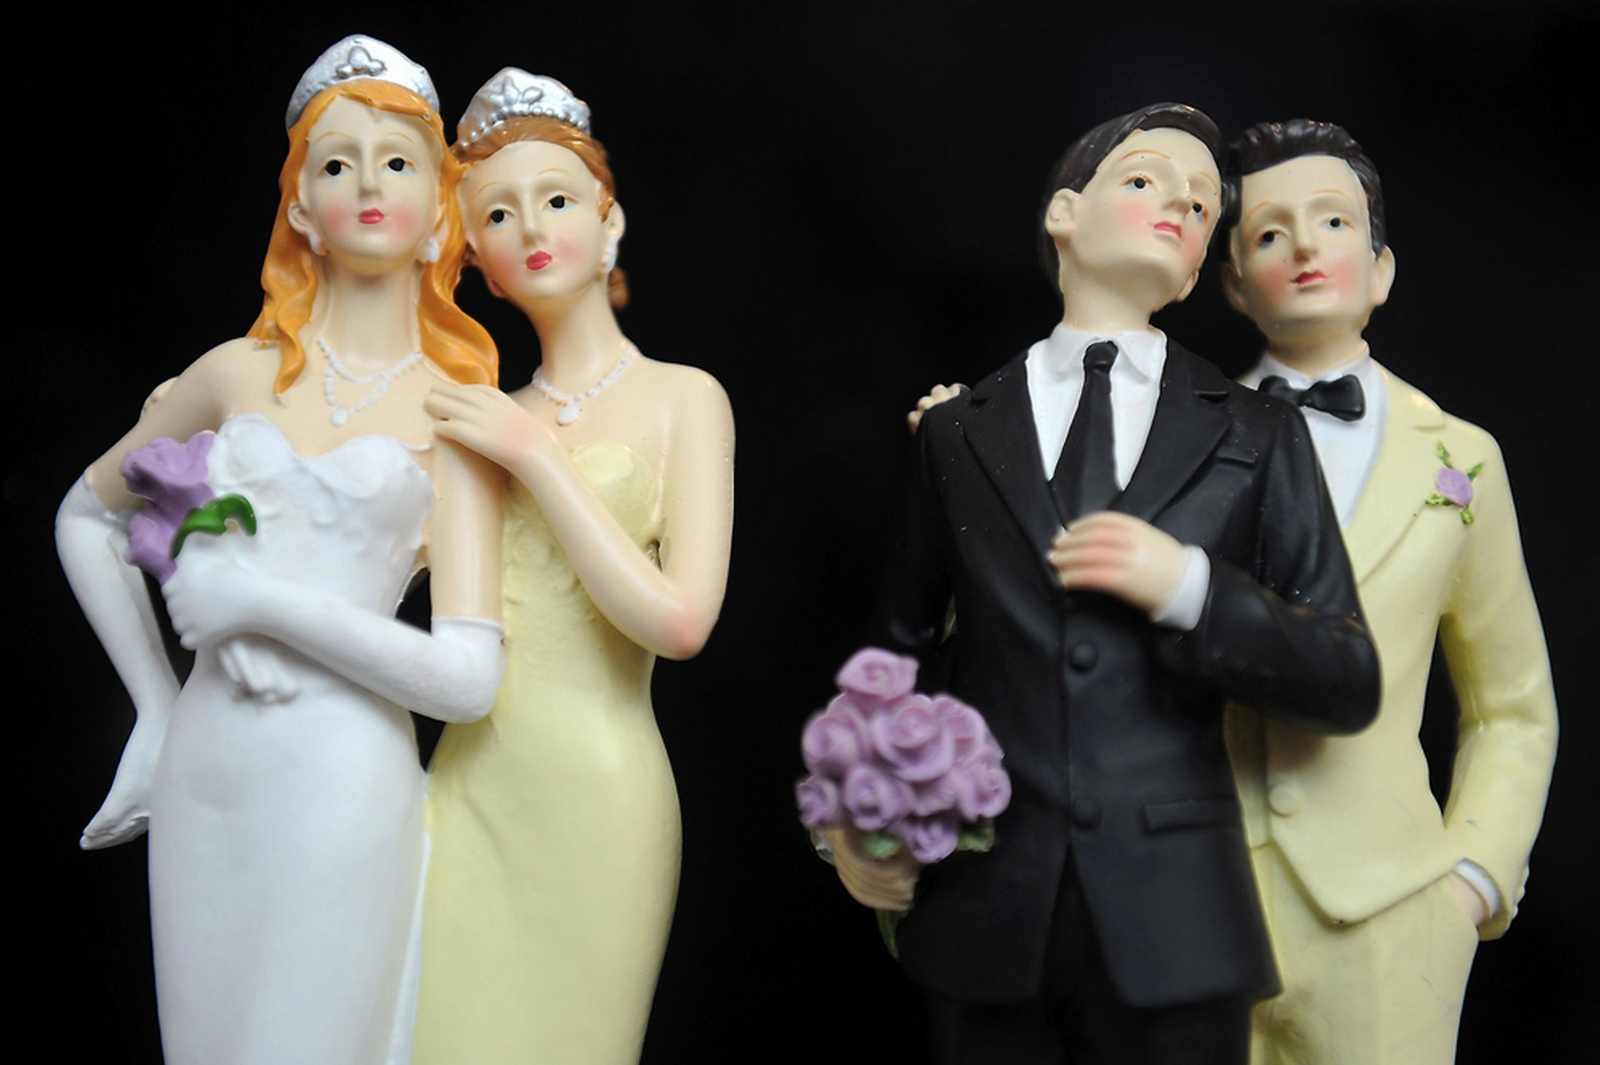 what does a civil union relationship mean